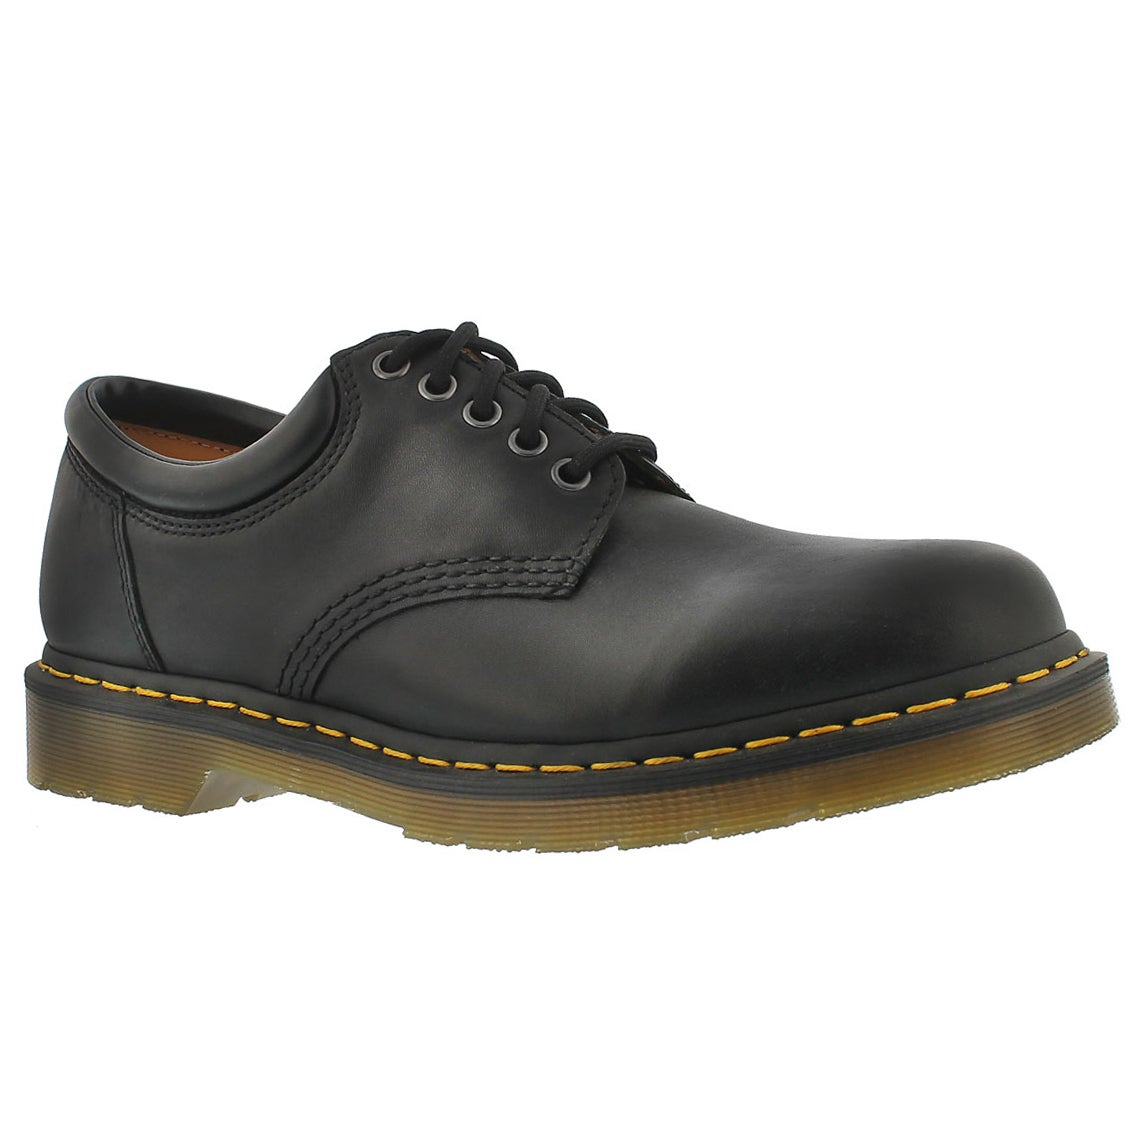 Mns 8053 blk 5-eye nappa oxford